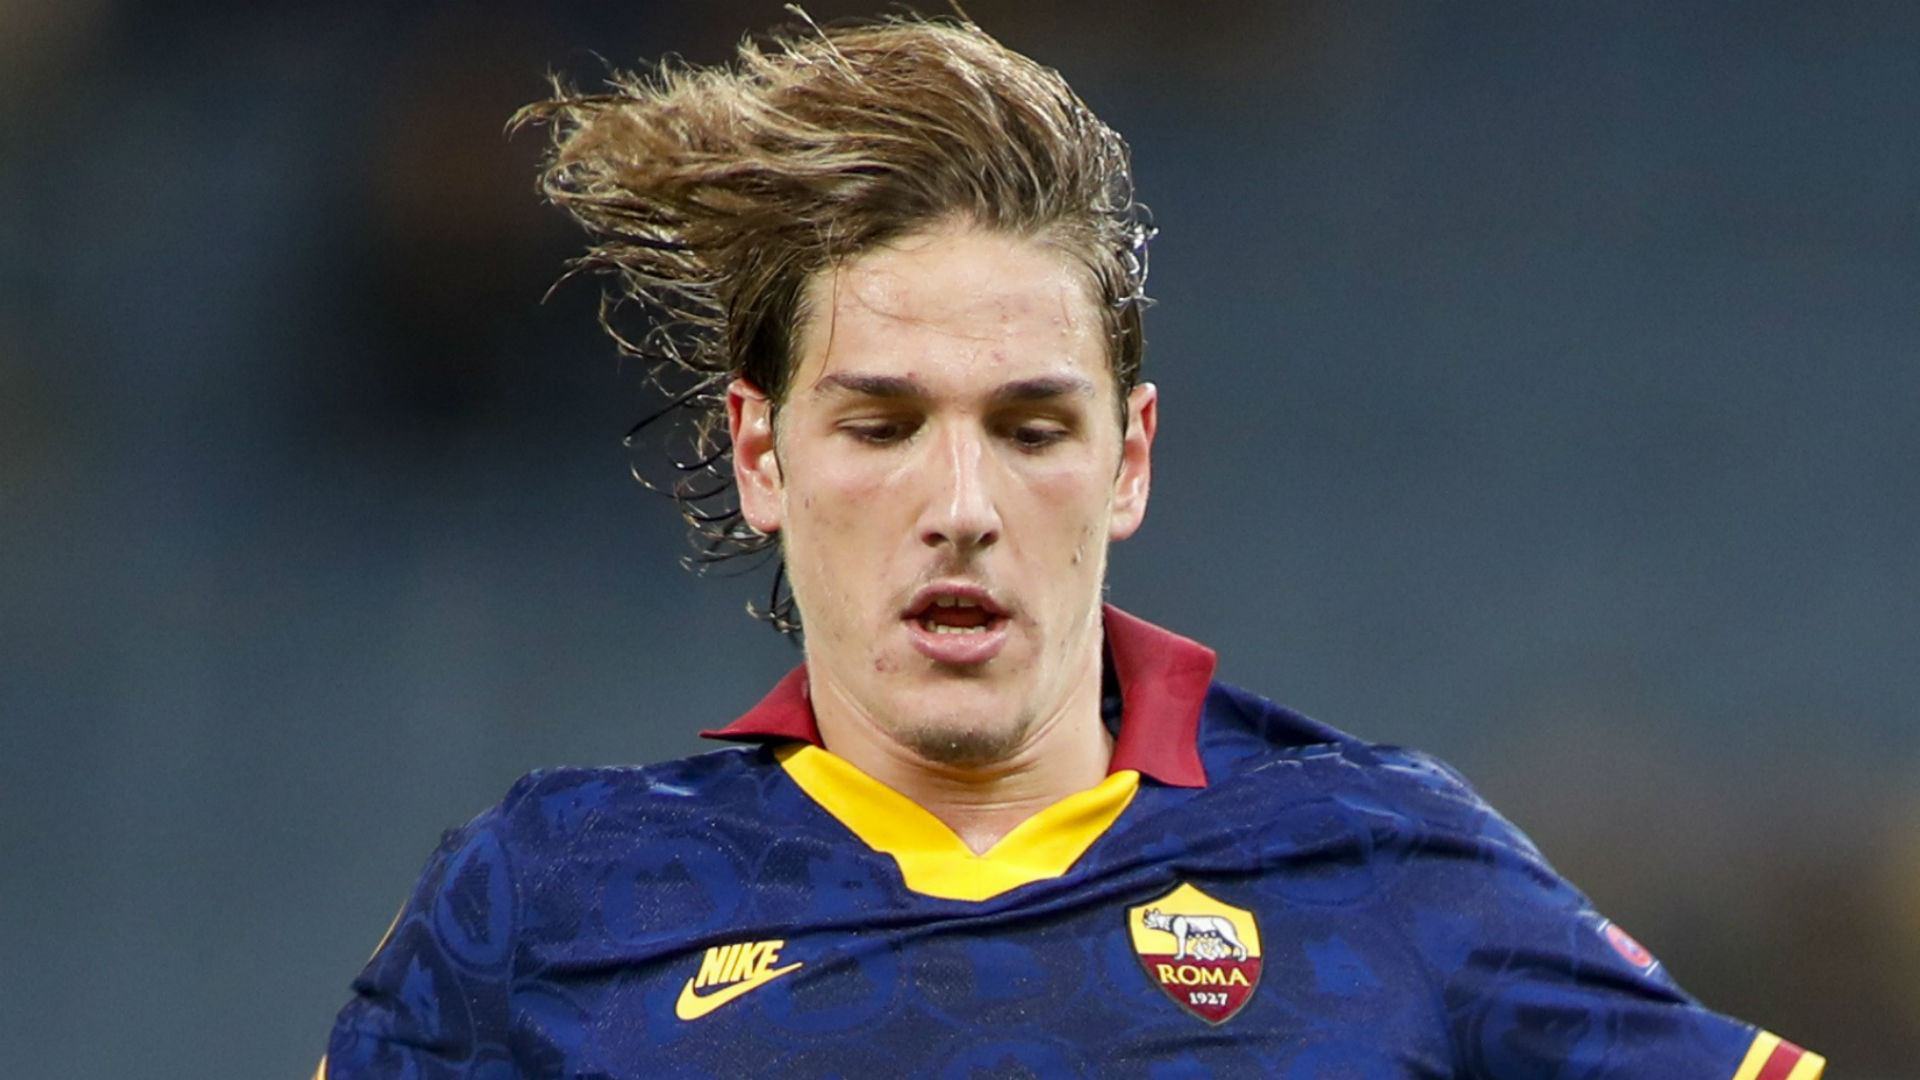 Roma's Zaniolo suffers serious-looking injury in front of Italy coach Mancini